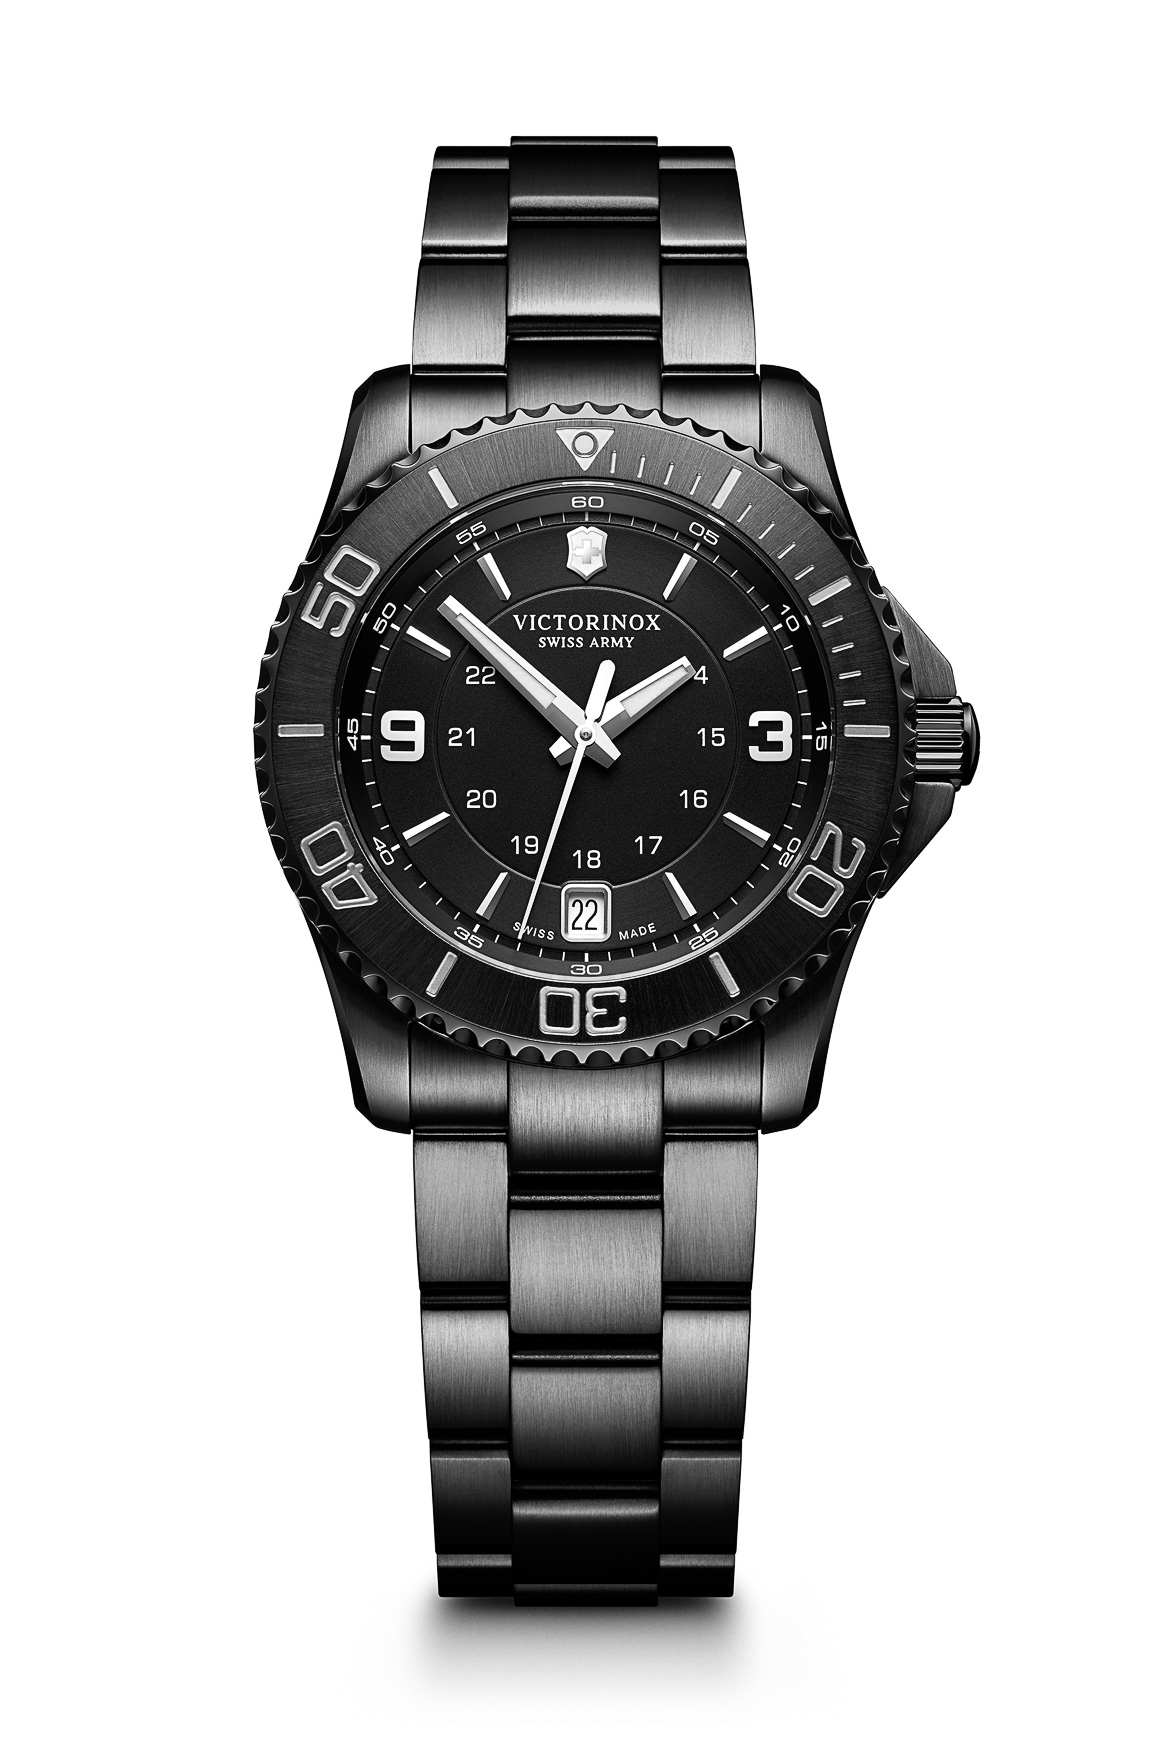 For knapt 5.000 kroner schweizisk ur: Victorinox Maverick Black Edition